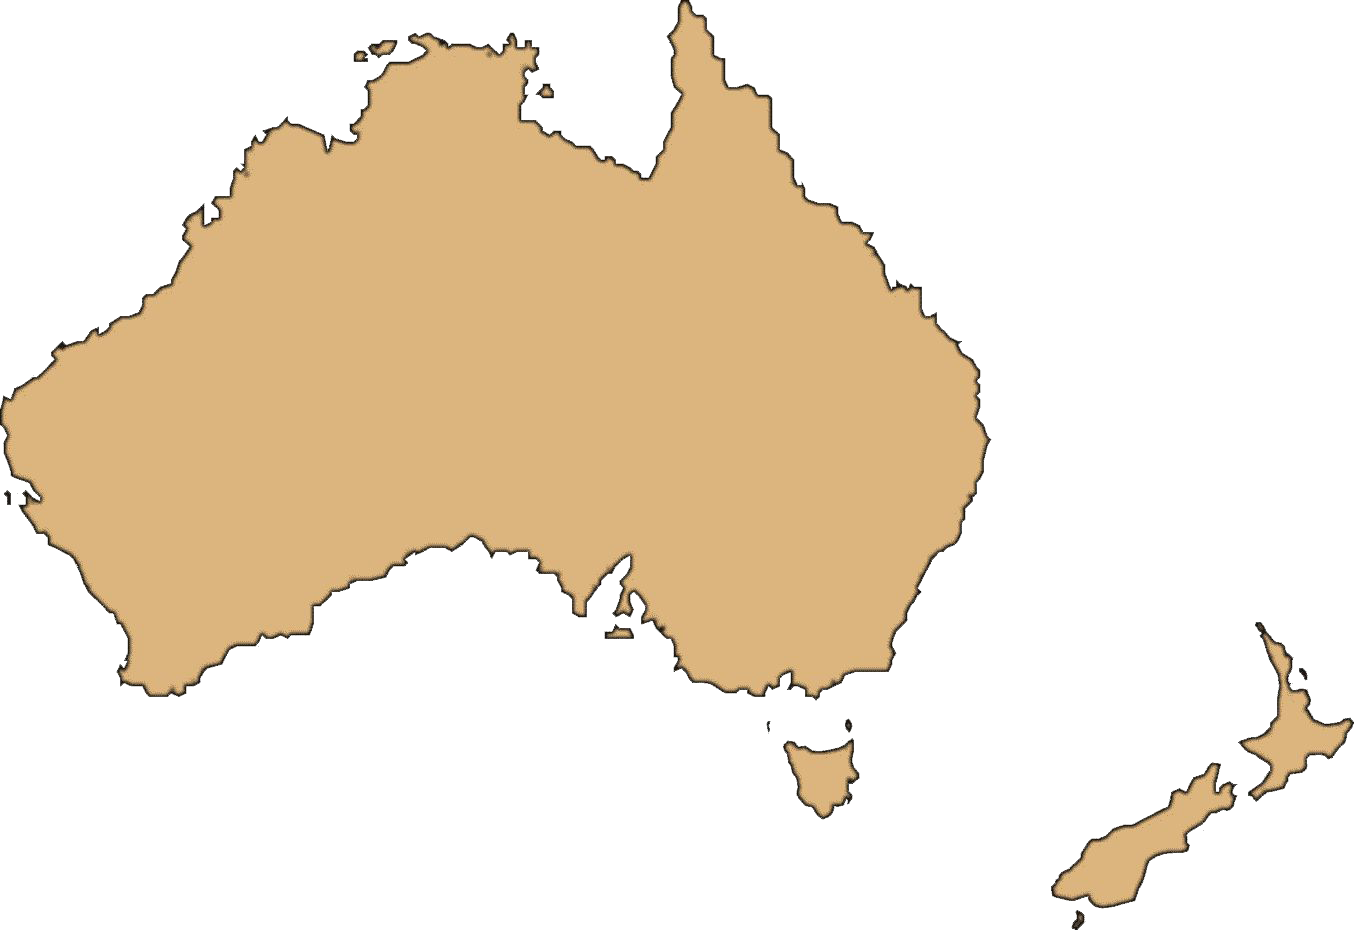 Download free australia map transparent background icon favicon australia map transparent background png image gumiabroncs Images